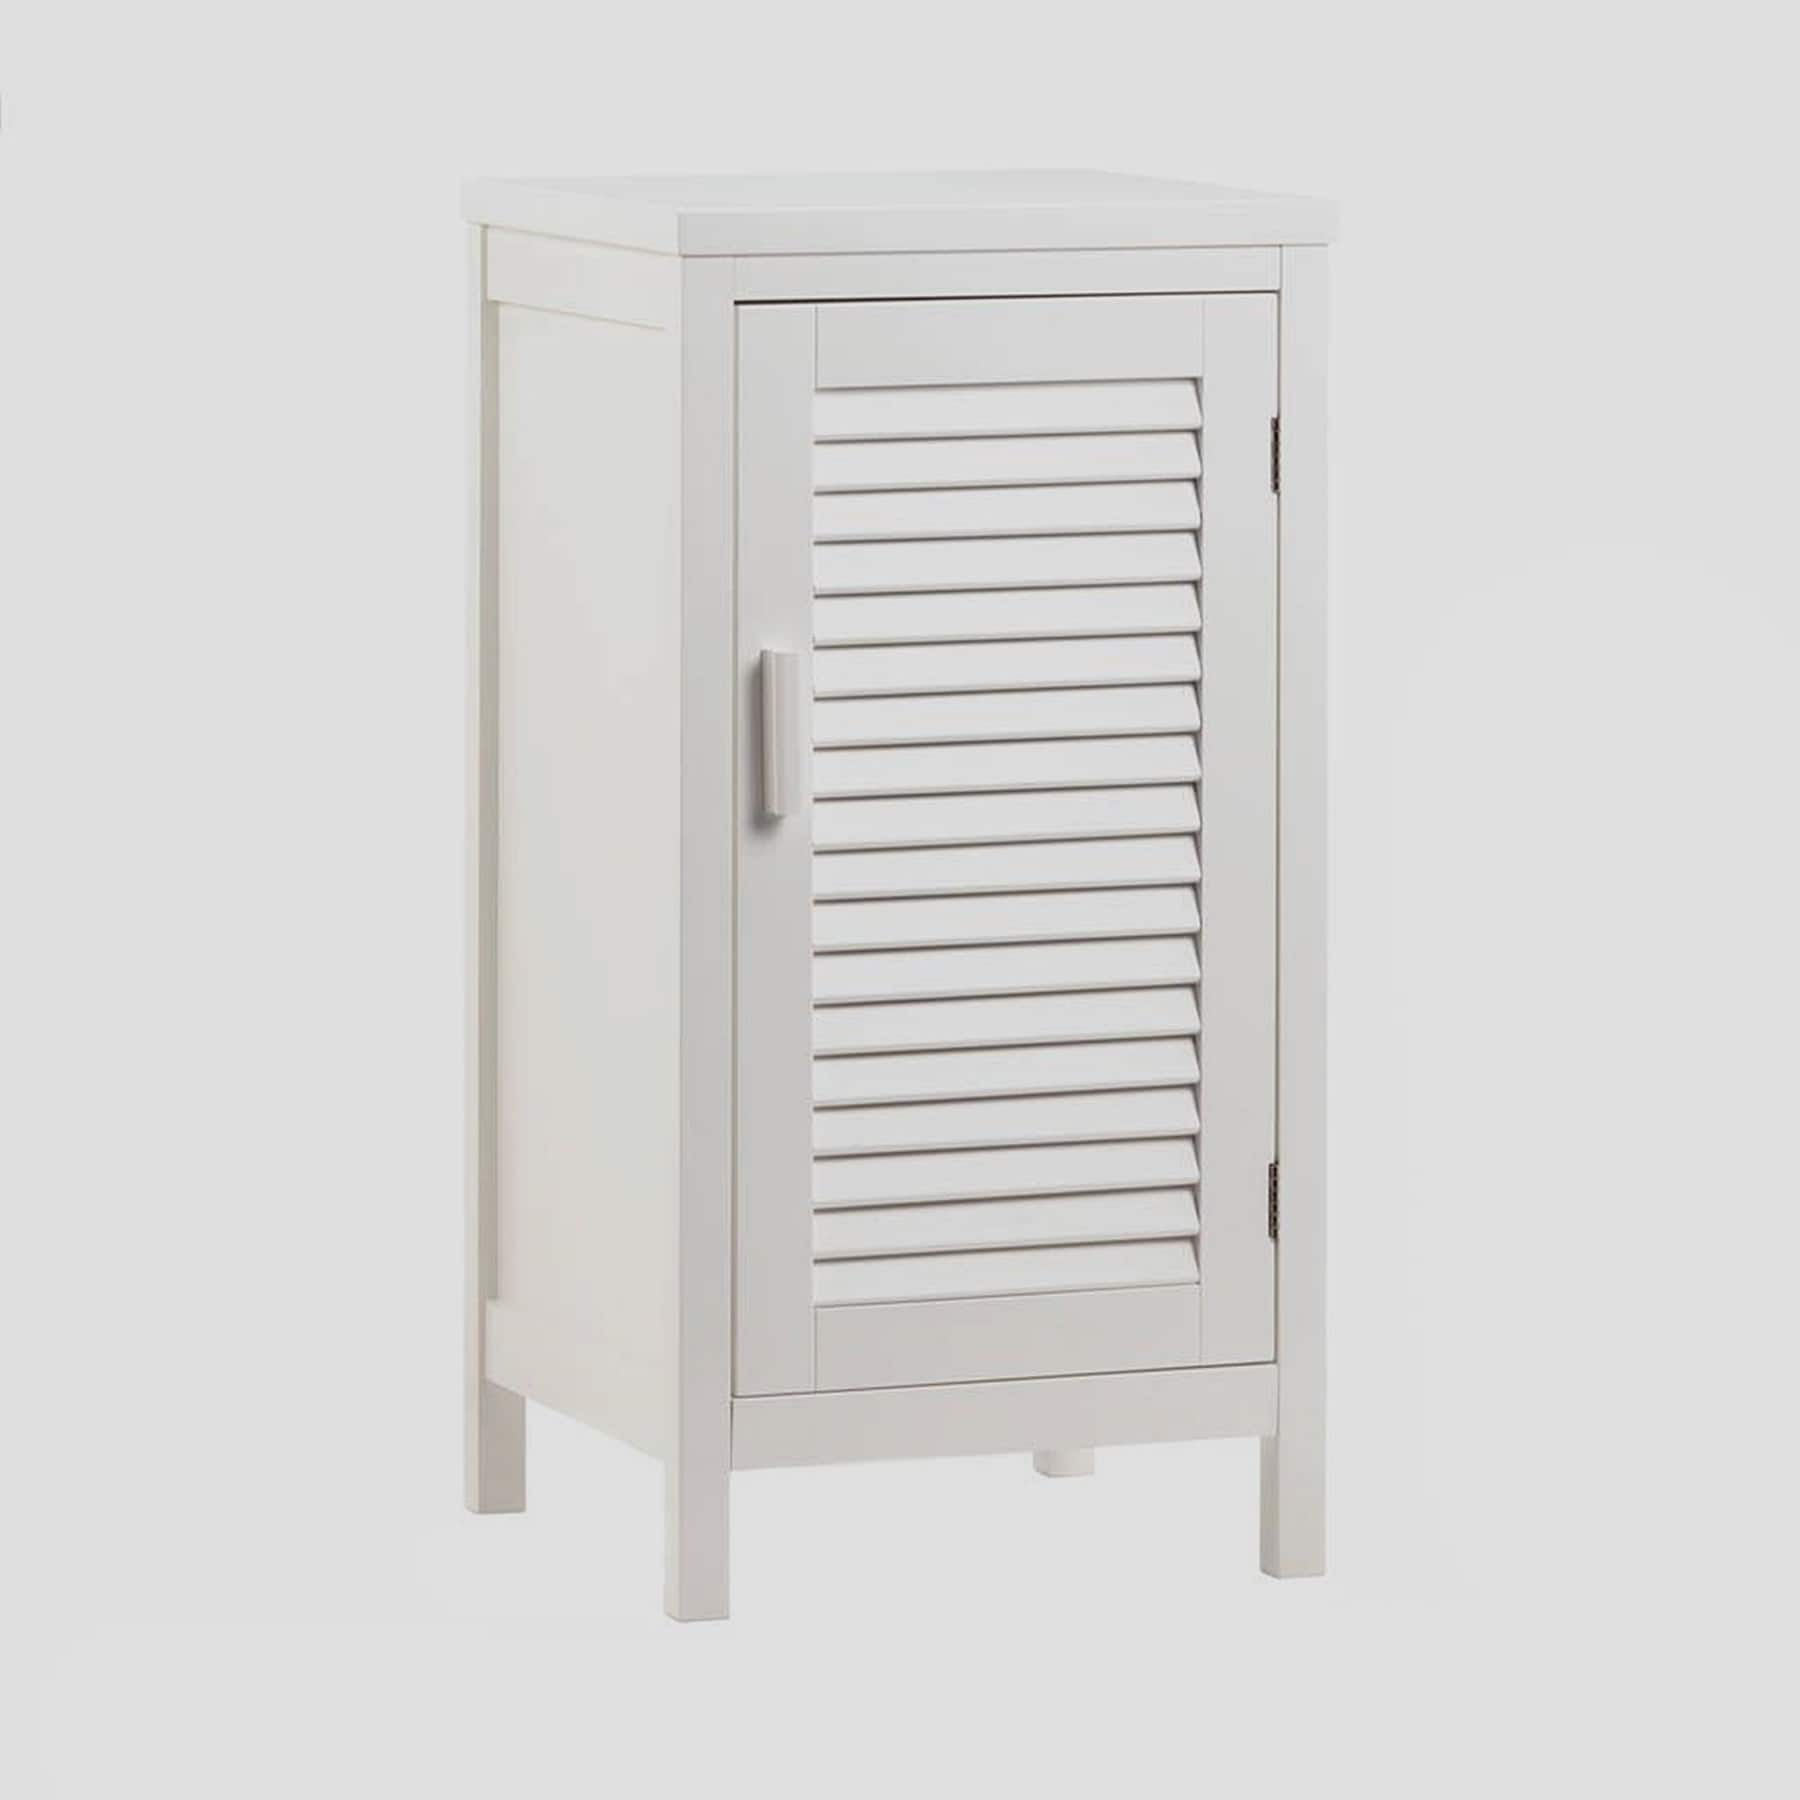 Olympia White Single Slatted Door Storage Cabinet - Free Shipping .  sc 1 st  gaml.us & Terrific Slatted Doors Gallery - Exterior ideas 3D - gaml.us - gaml.us